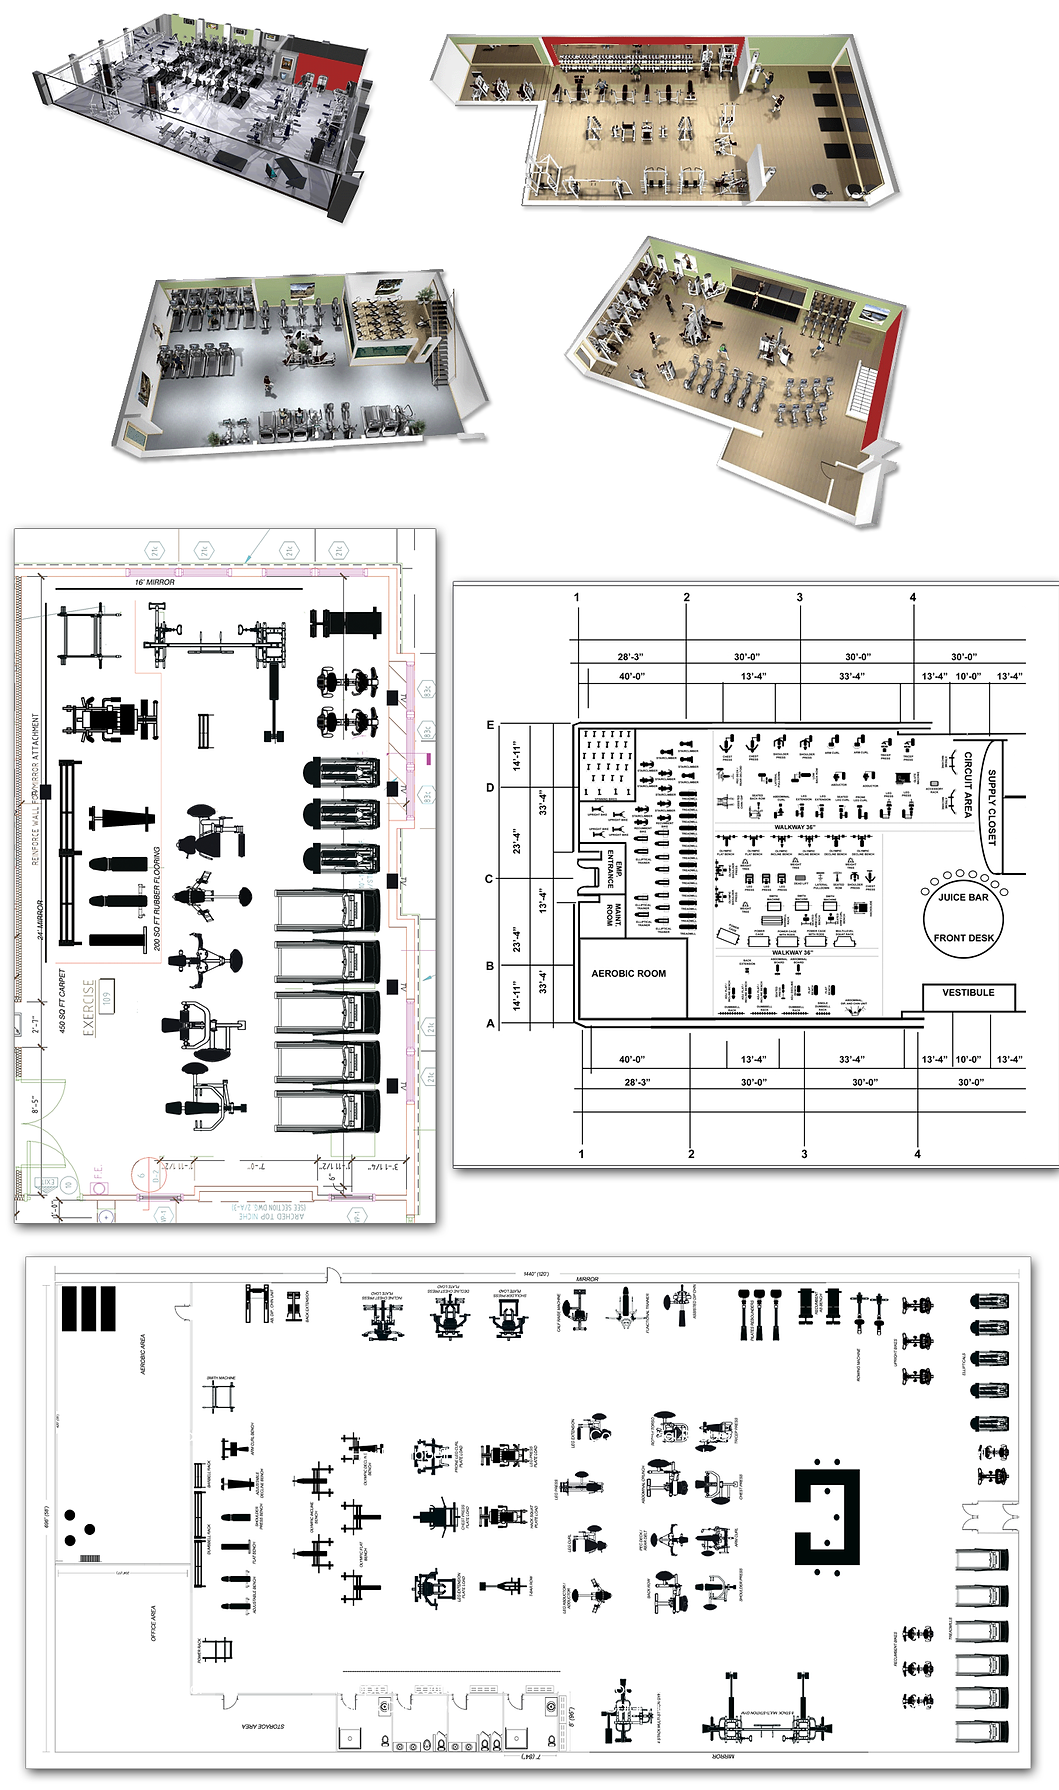 Facilty Layout Including Floor Plans, Blueprints, Space Assist